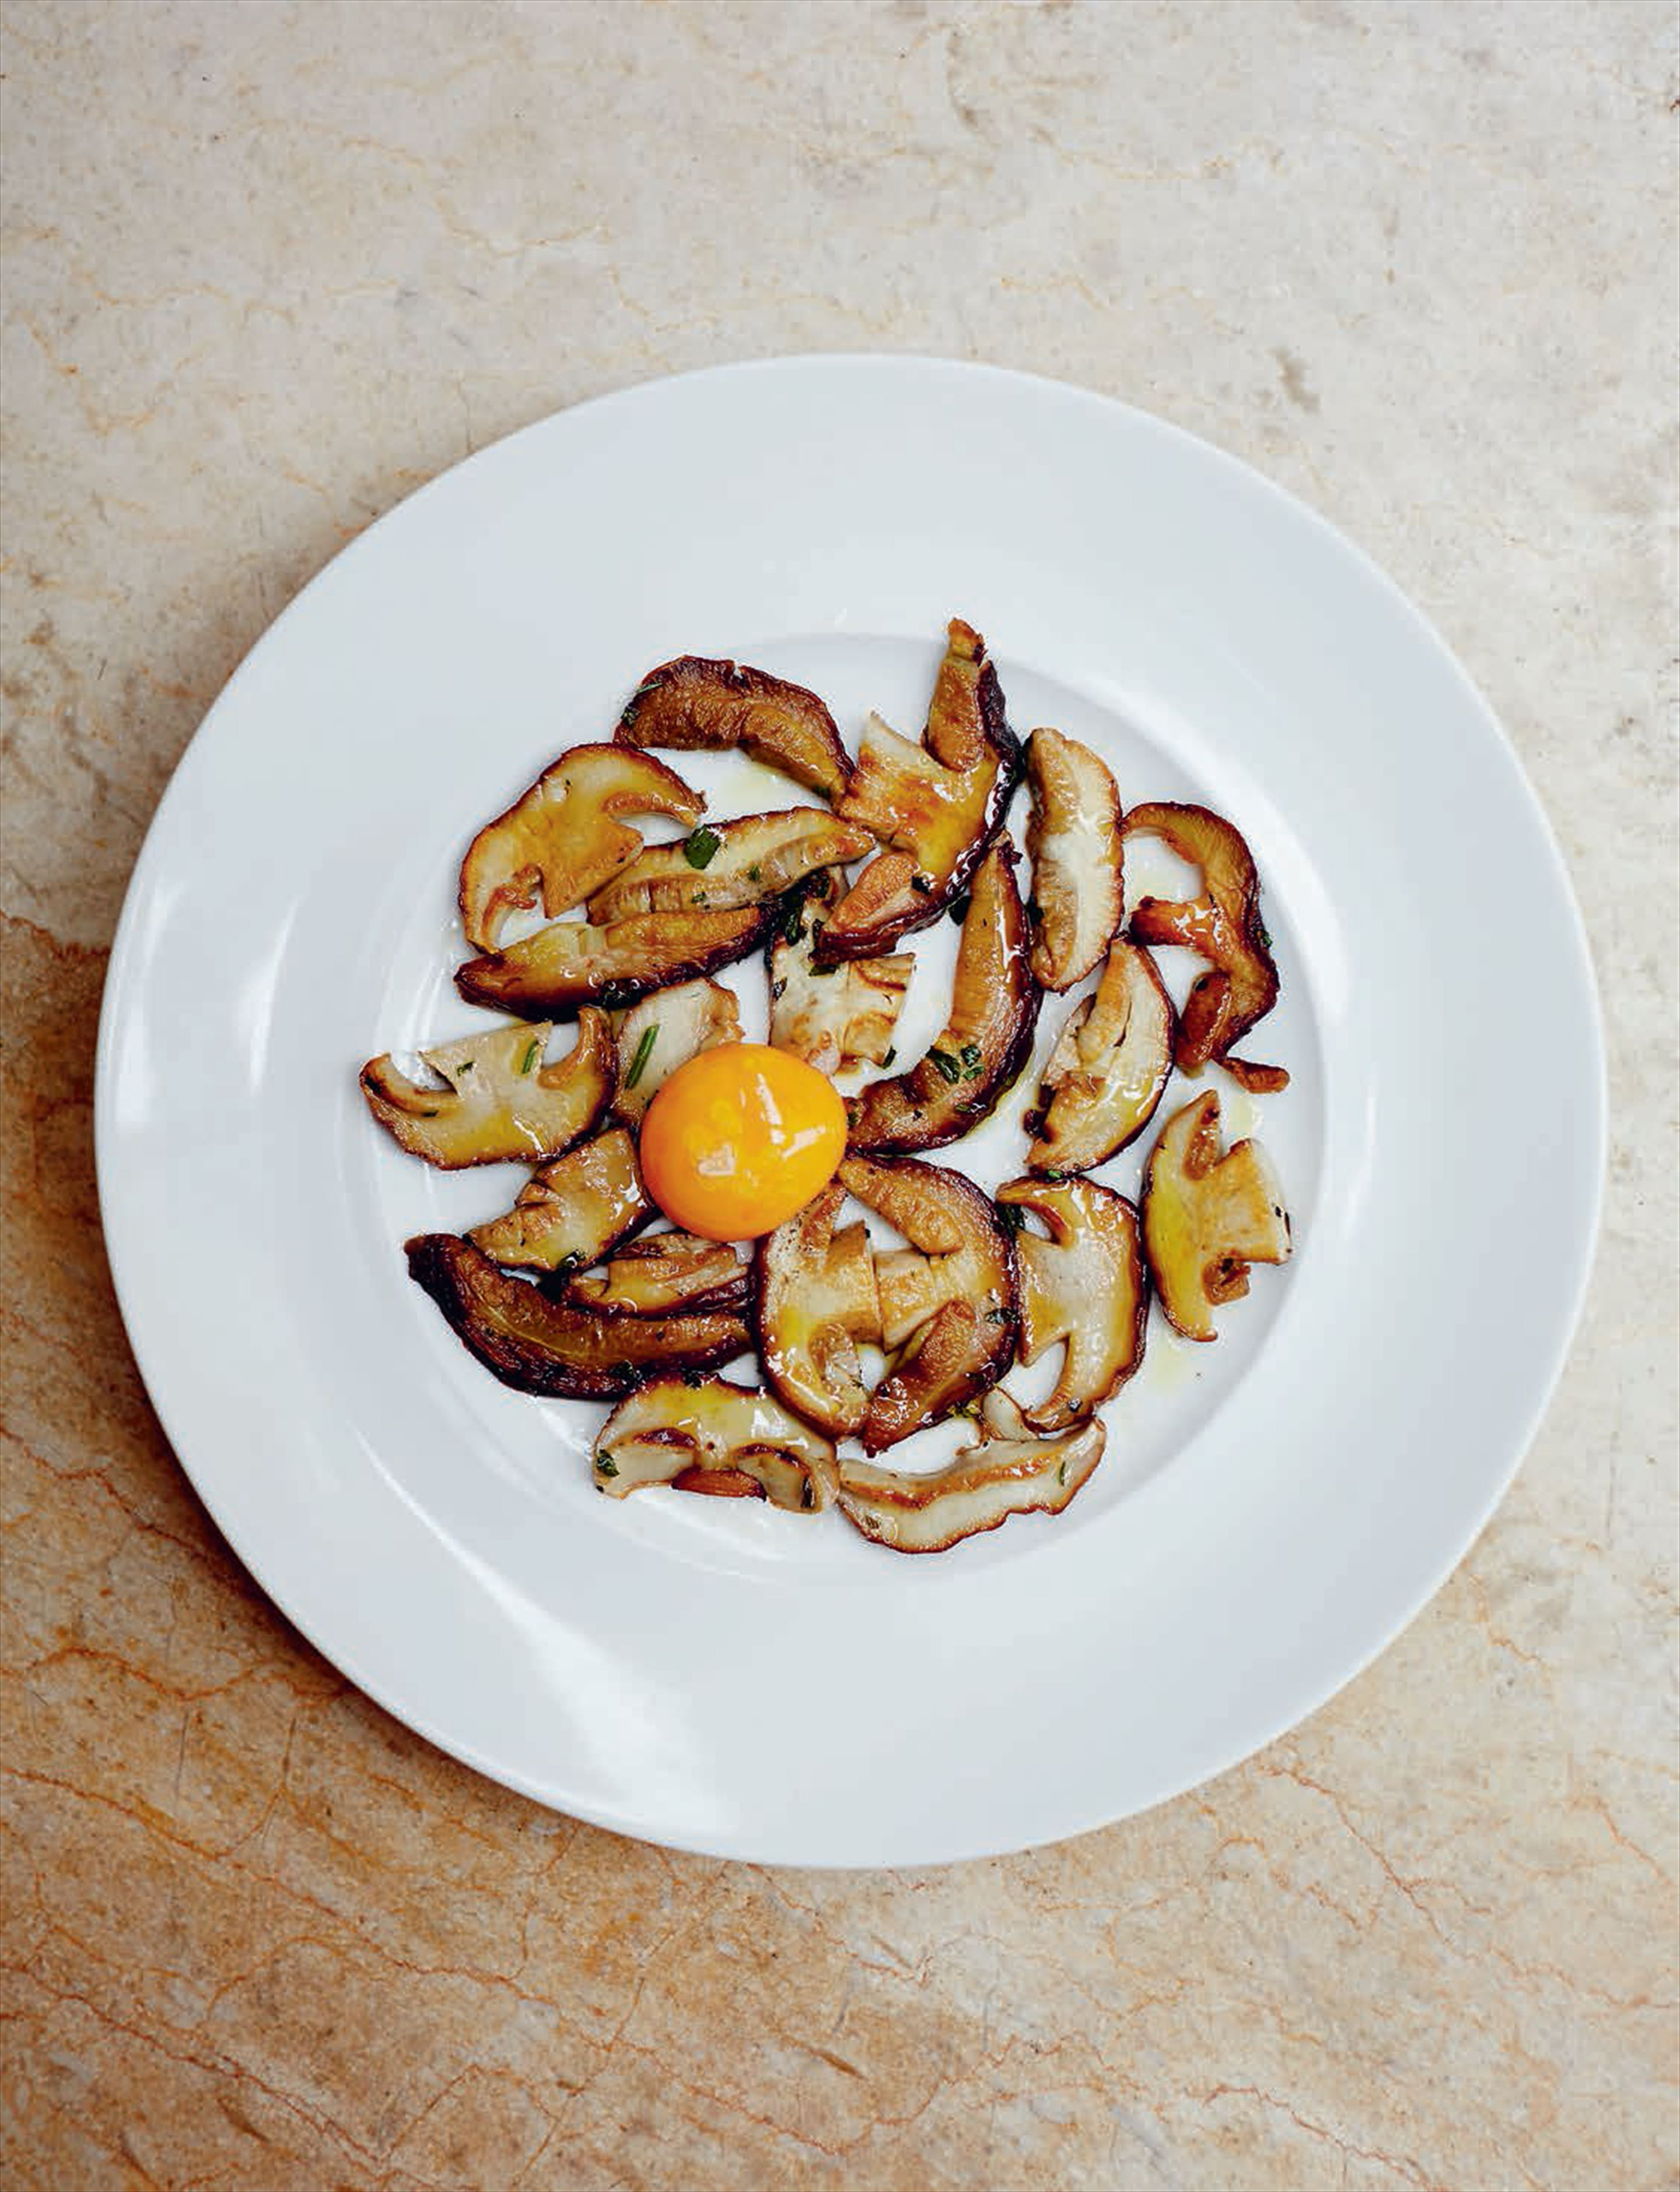 Pan-fried ceps with egg yolk